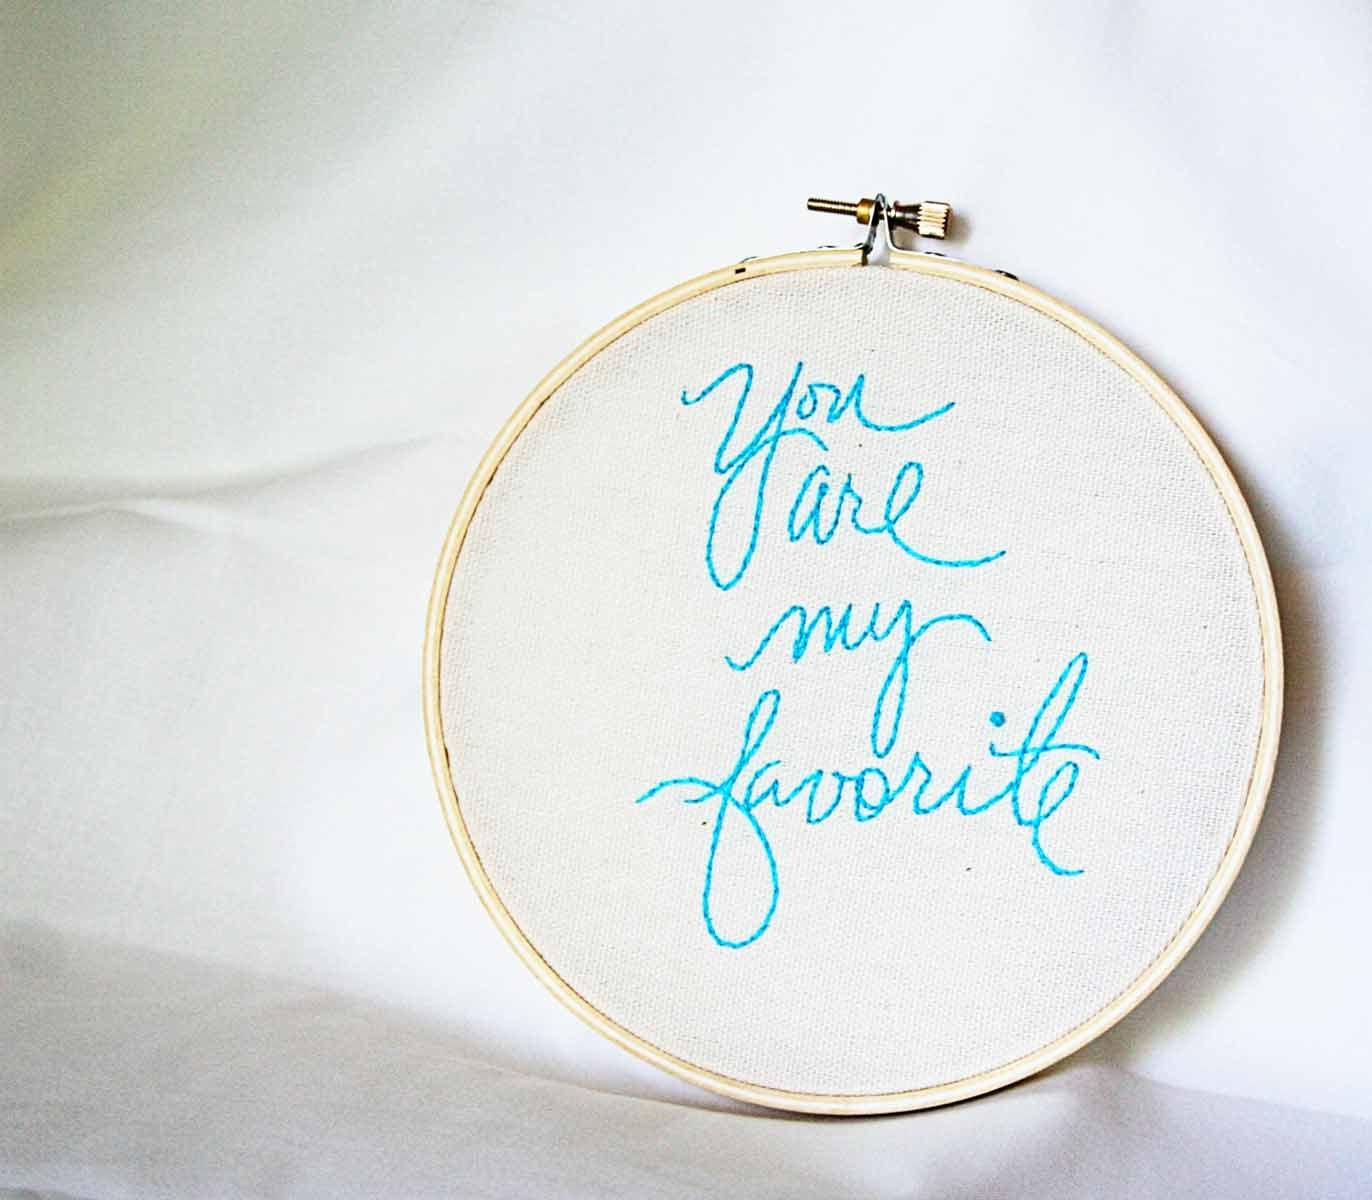 You are my favorite - 6 inch round embroidery hoop